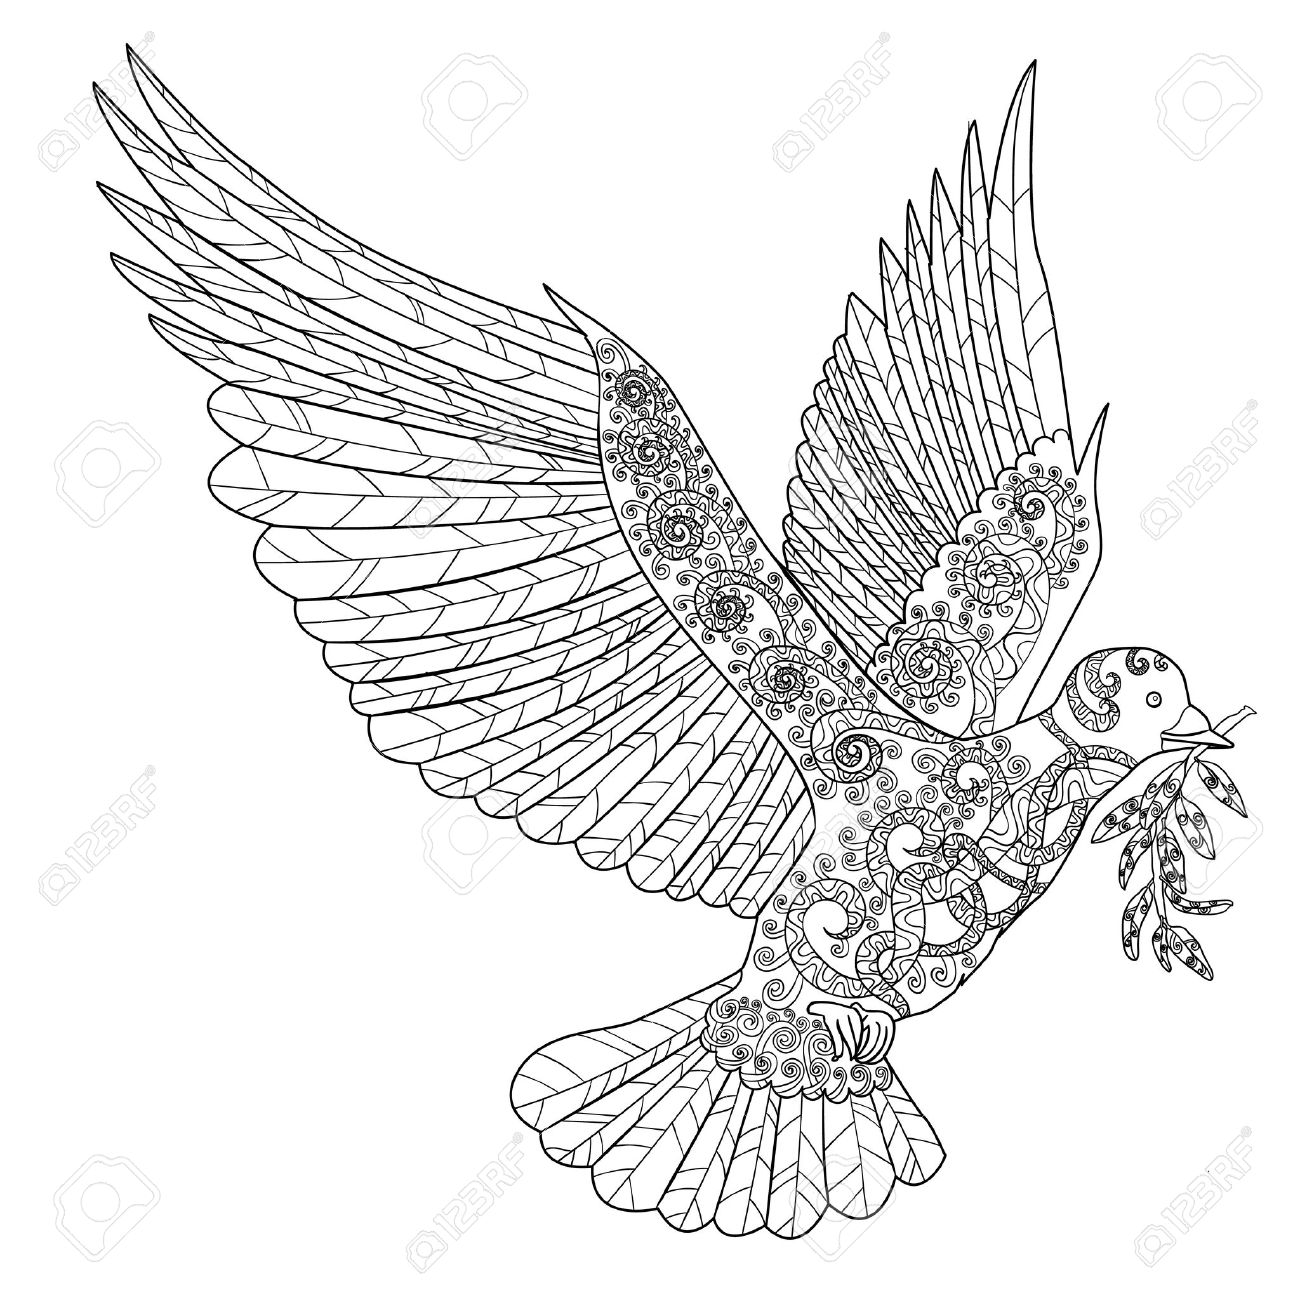 Flying dove with olive branch. Adult antistress coloring page. Black white hand drawn doodle bird. Symbol of the Peace. Sketch for tattoo, poster, print, t-shirt Vector. - 50888308